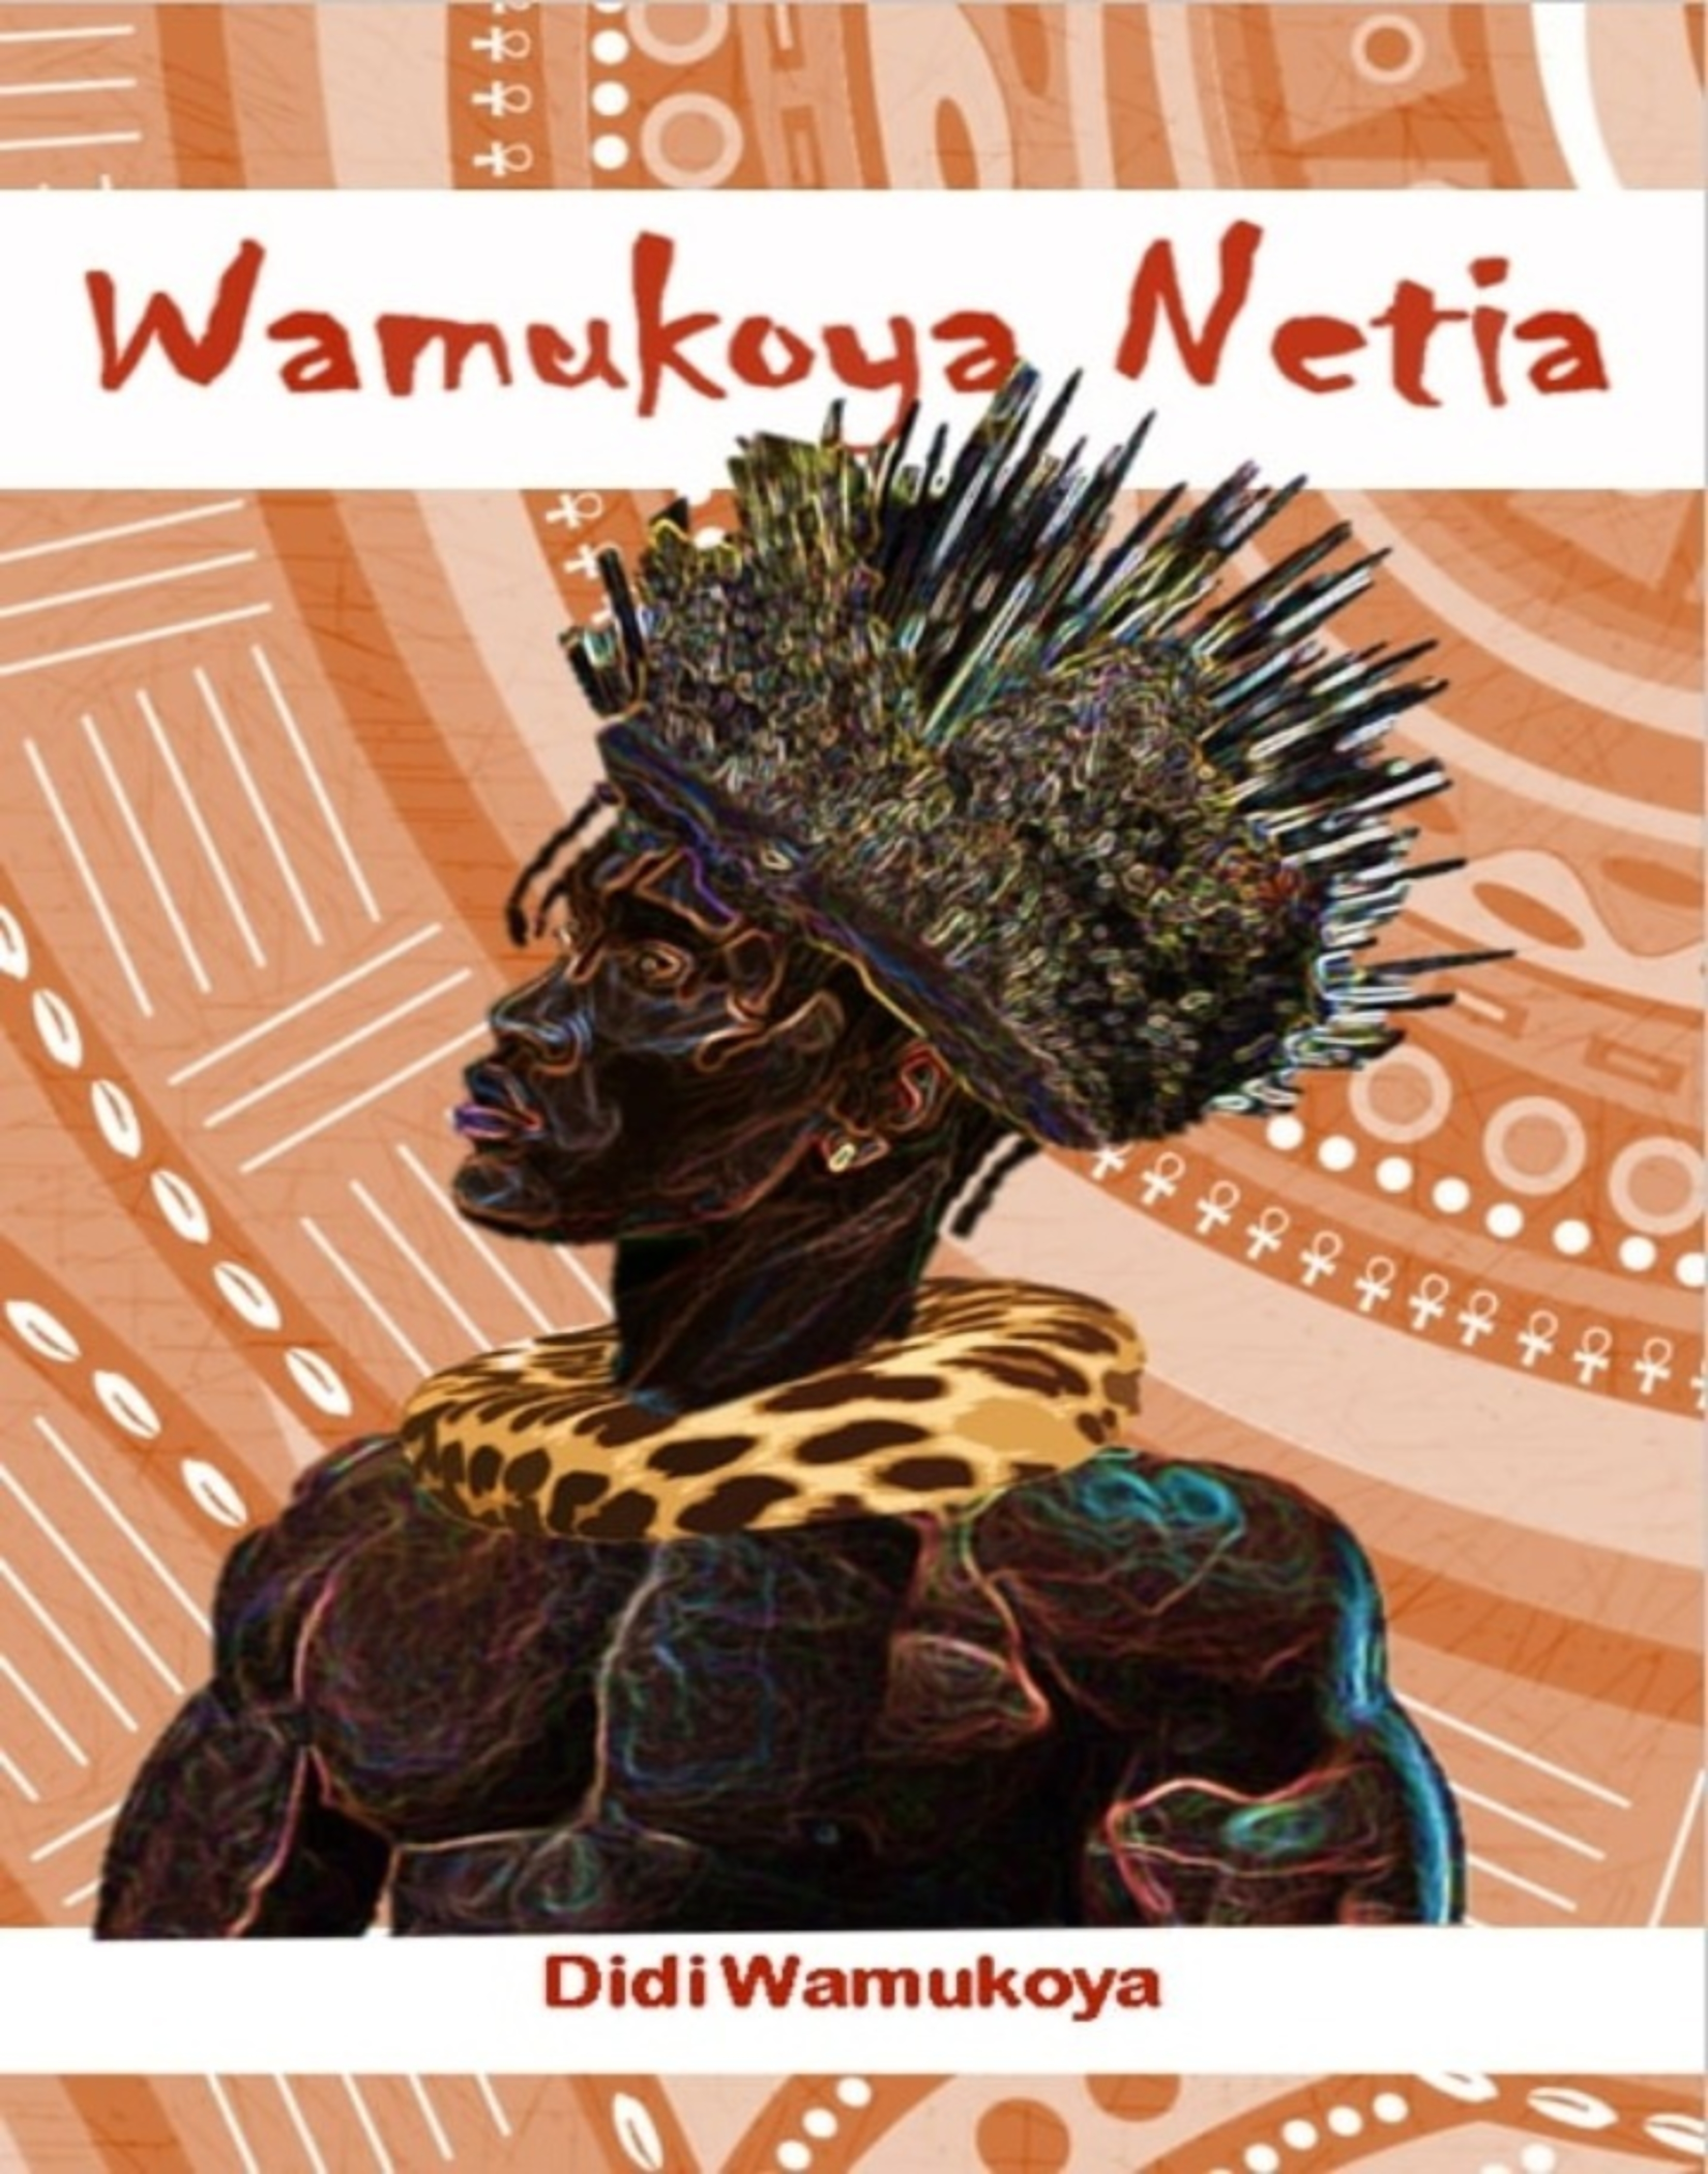 Purchase a Paperback Copy of Wamukoya Netia at Kshs. 1,000 from RafuBooks.Com